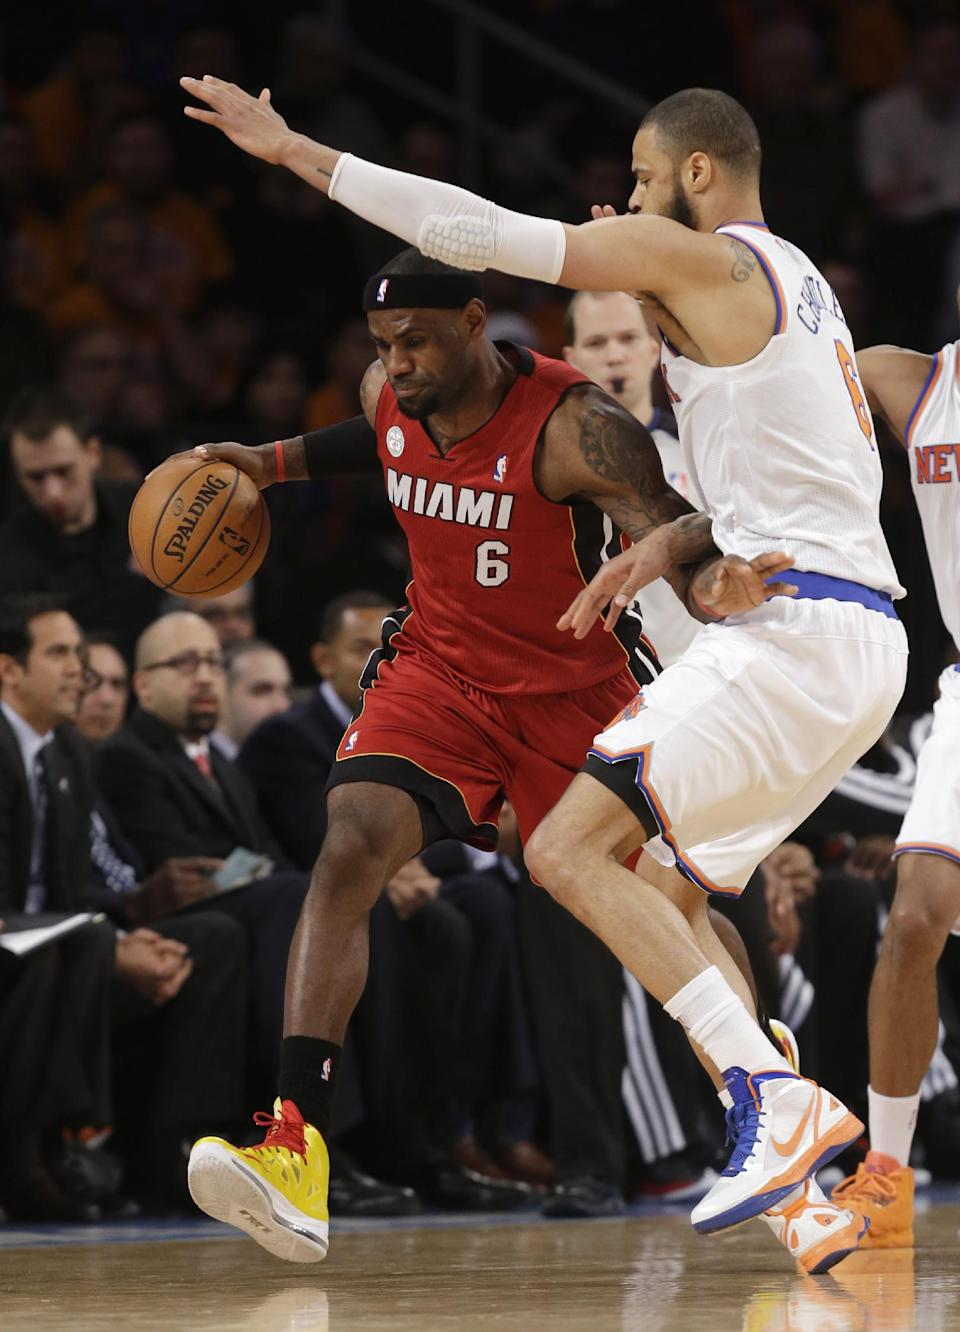 Miami Heat forward LeBron James (6) drives against New York Knicks center Tyson Chandler (6) during the first half of their NBA basketball game at Madison Square Garden in New York, Sunday, March 3, 2013. (AP Photo/Kathy Willens)